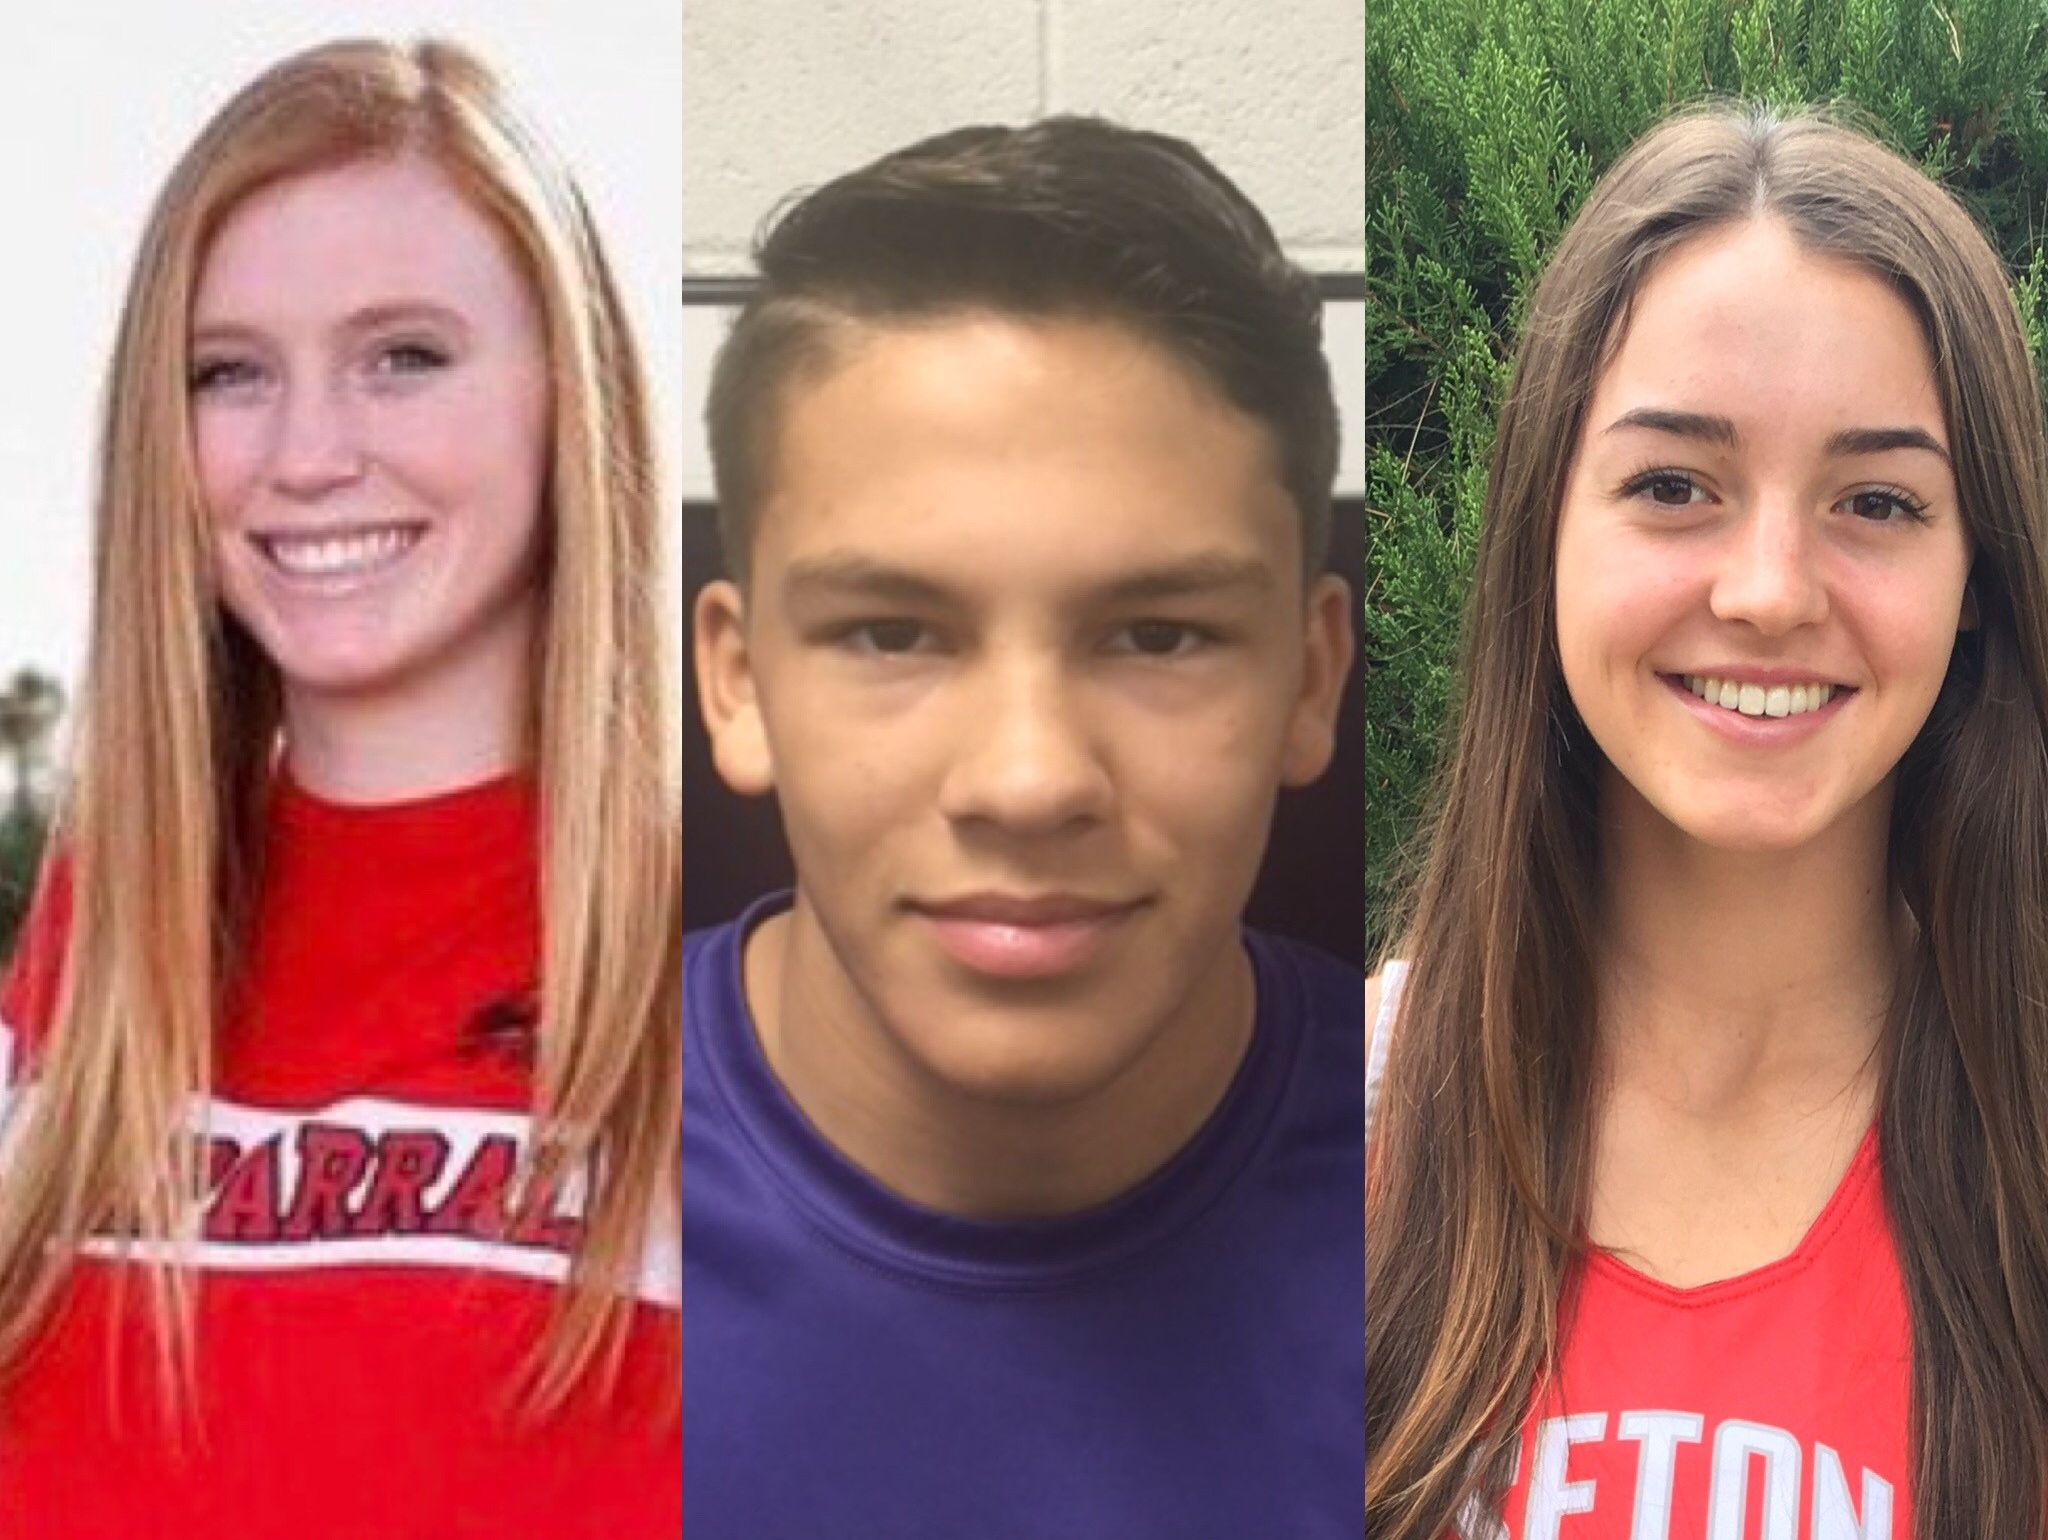 Congratulations to the Arizona Sports Awards Academic All-Star of the Week, Chloe Christakos, and Athletes of the Week, Denen Fernandez and Jenn Wirth, presented by La-Z-Boy Furniture Galleries, for Dec. 22-29.